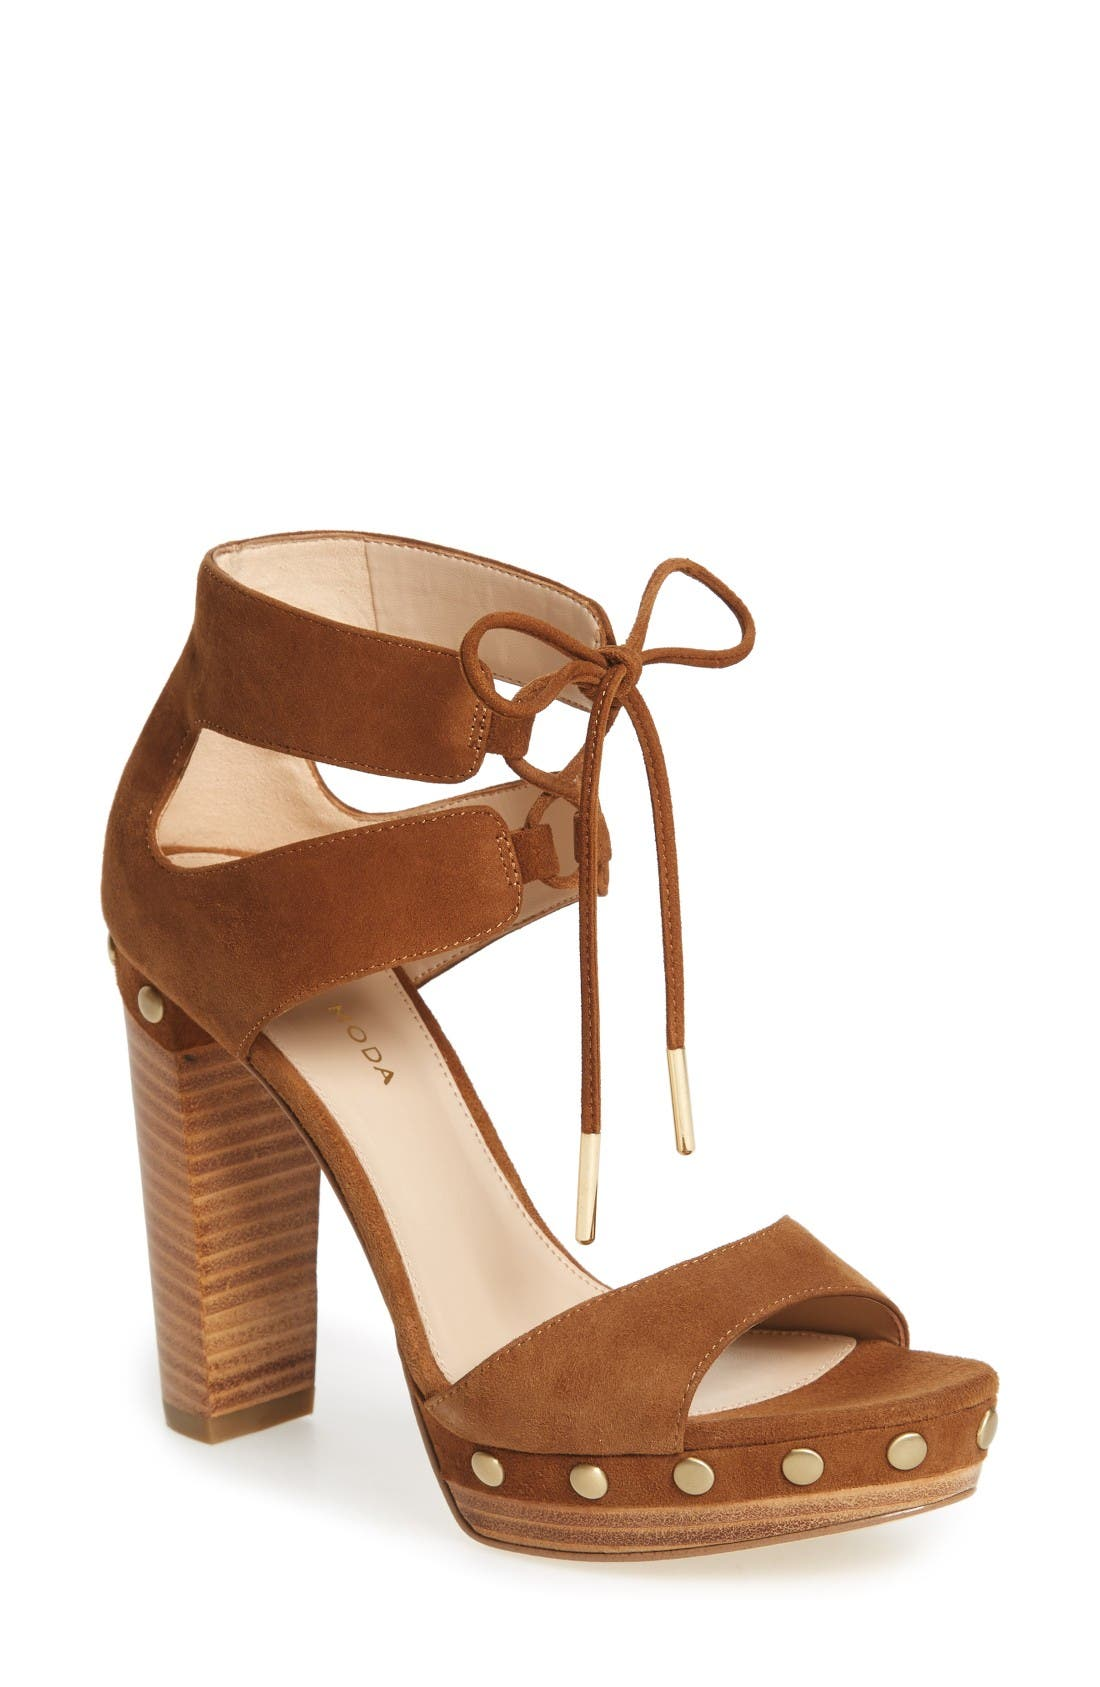 Pacific Platform Sandal,                         Main,                         color, Cognac Leather